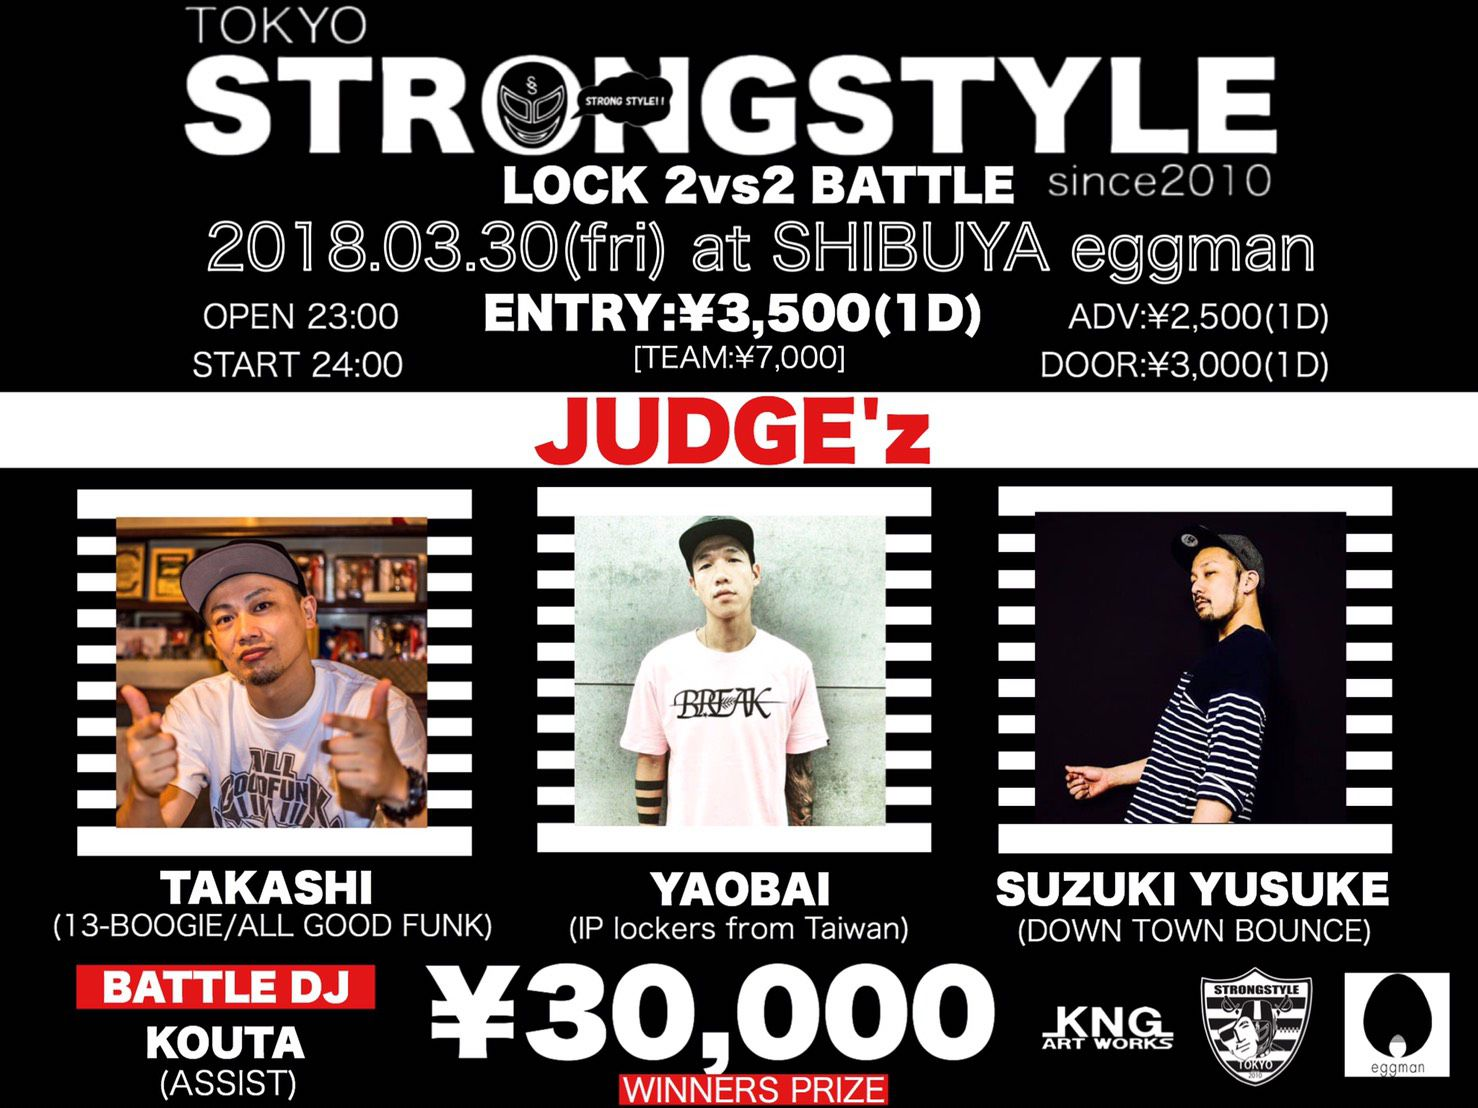 STRONG STYLE vol,11 -LOCK 2vs2 BATTLE-